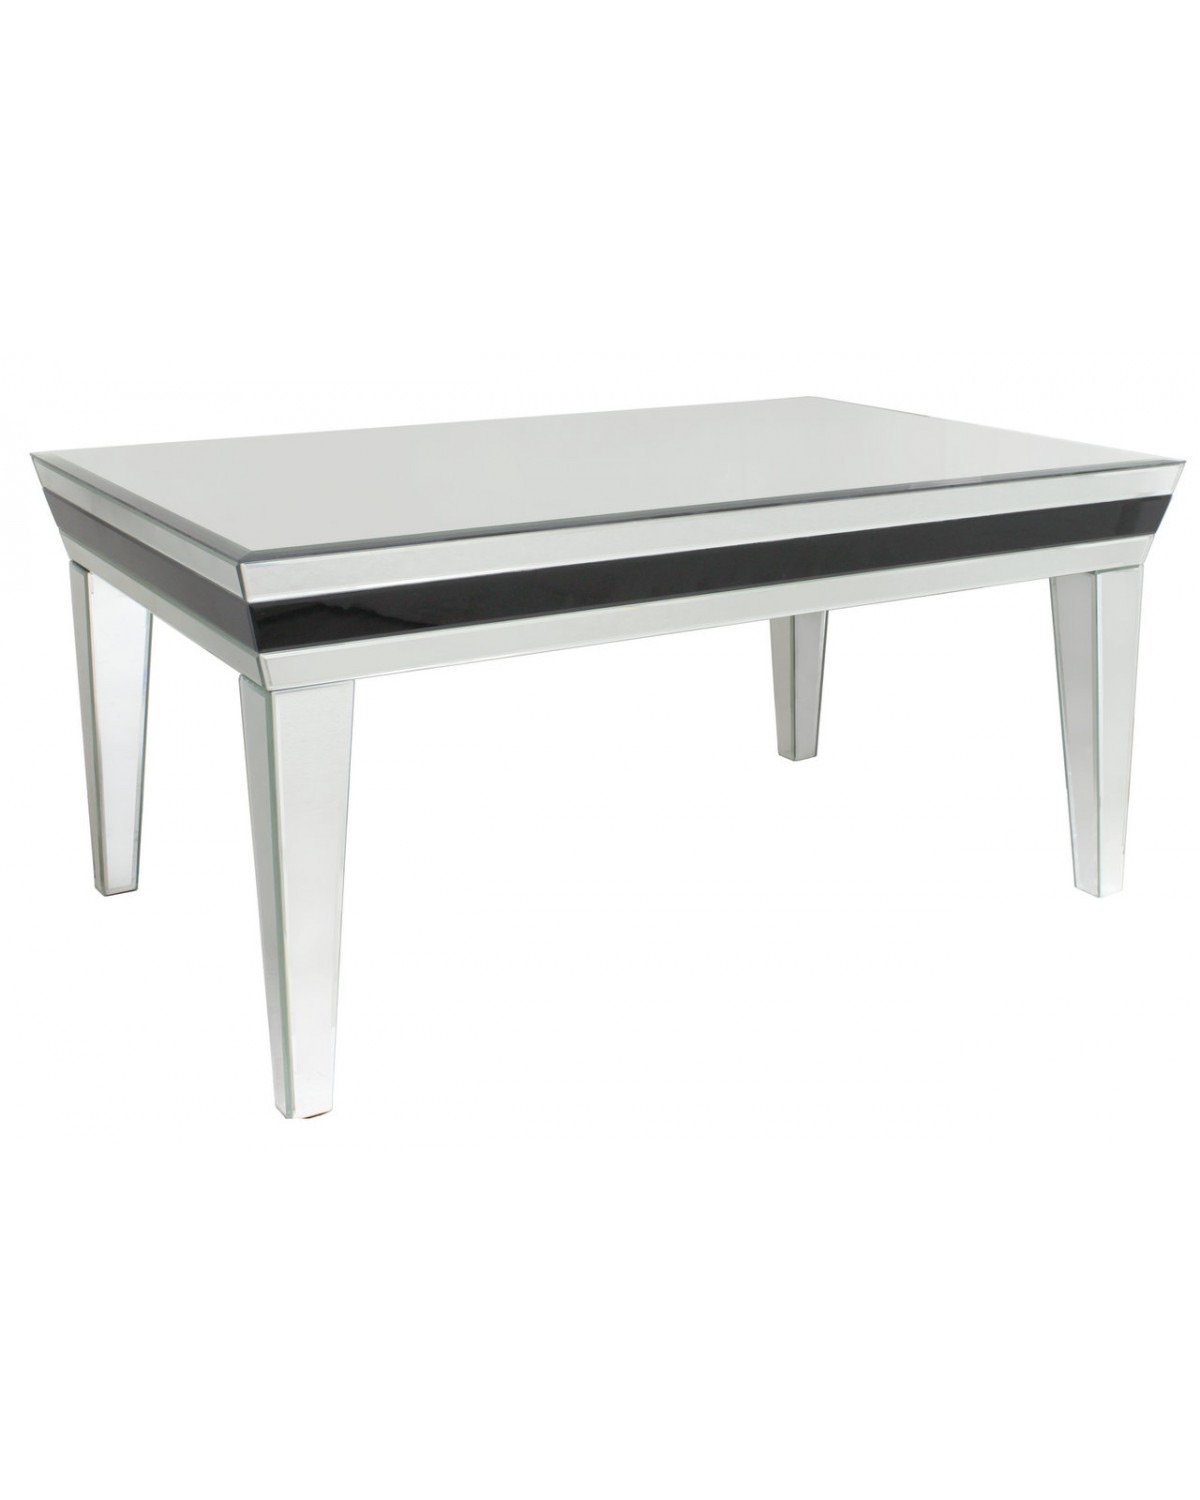 Seattle Black Trim Mirrored Coffee Table